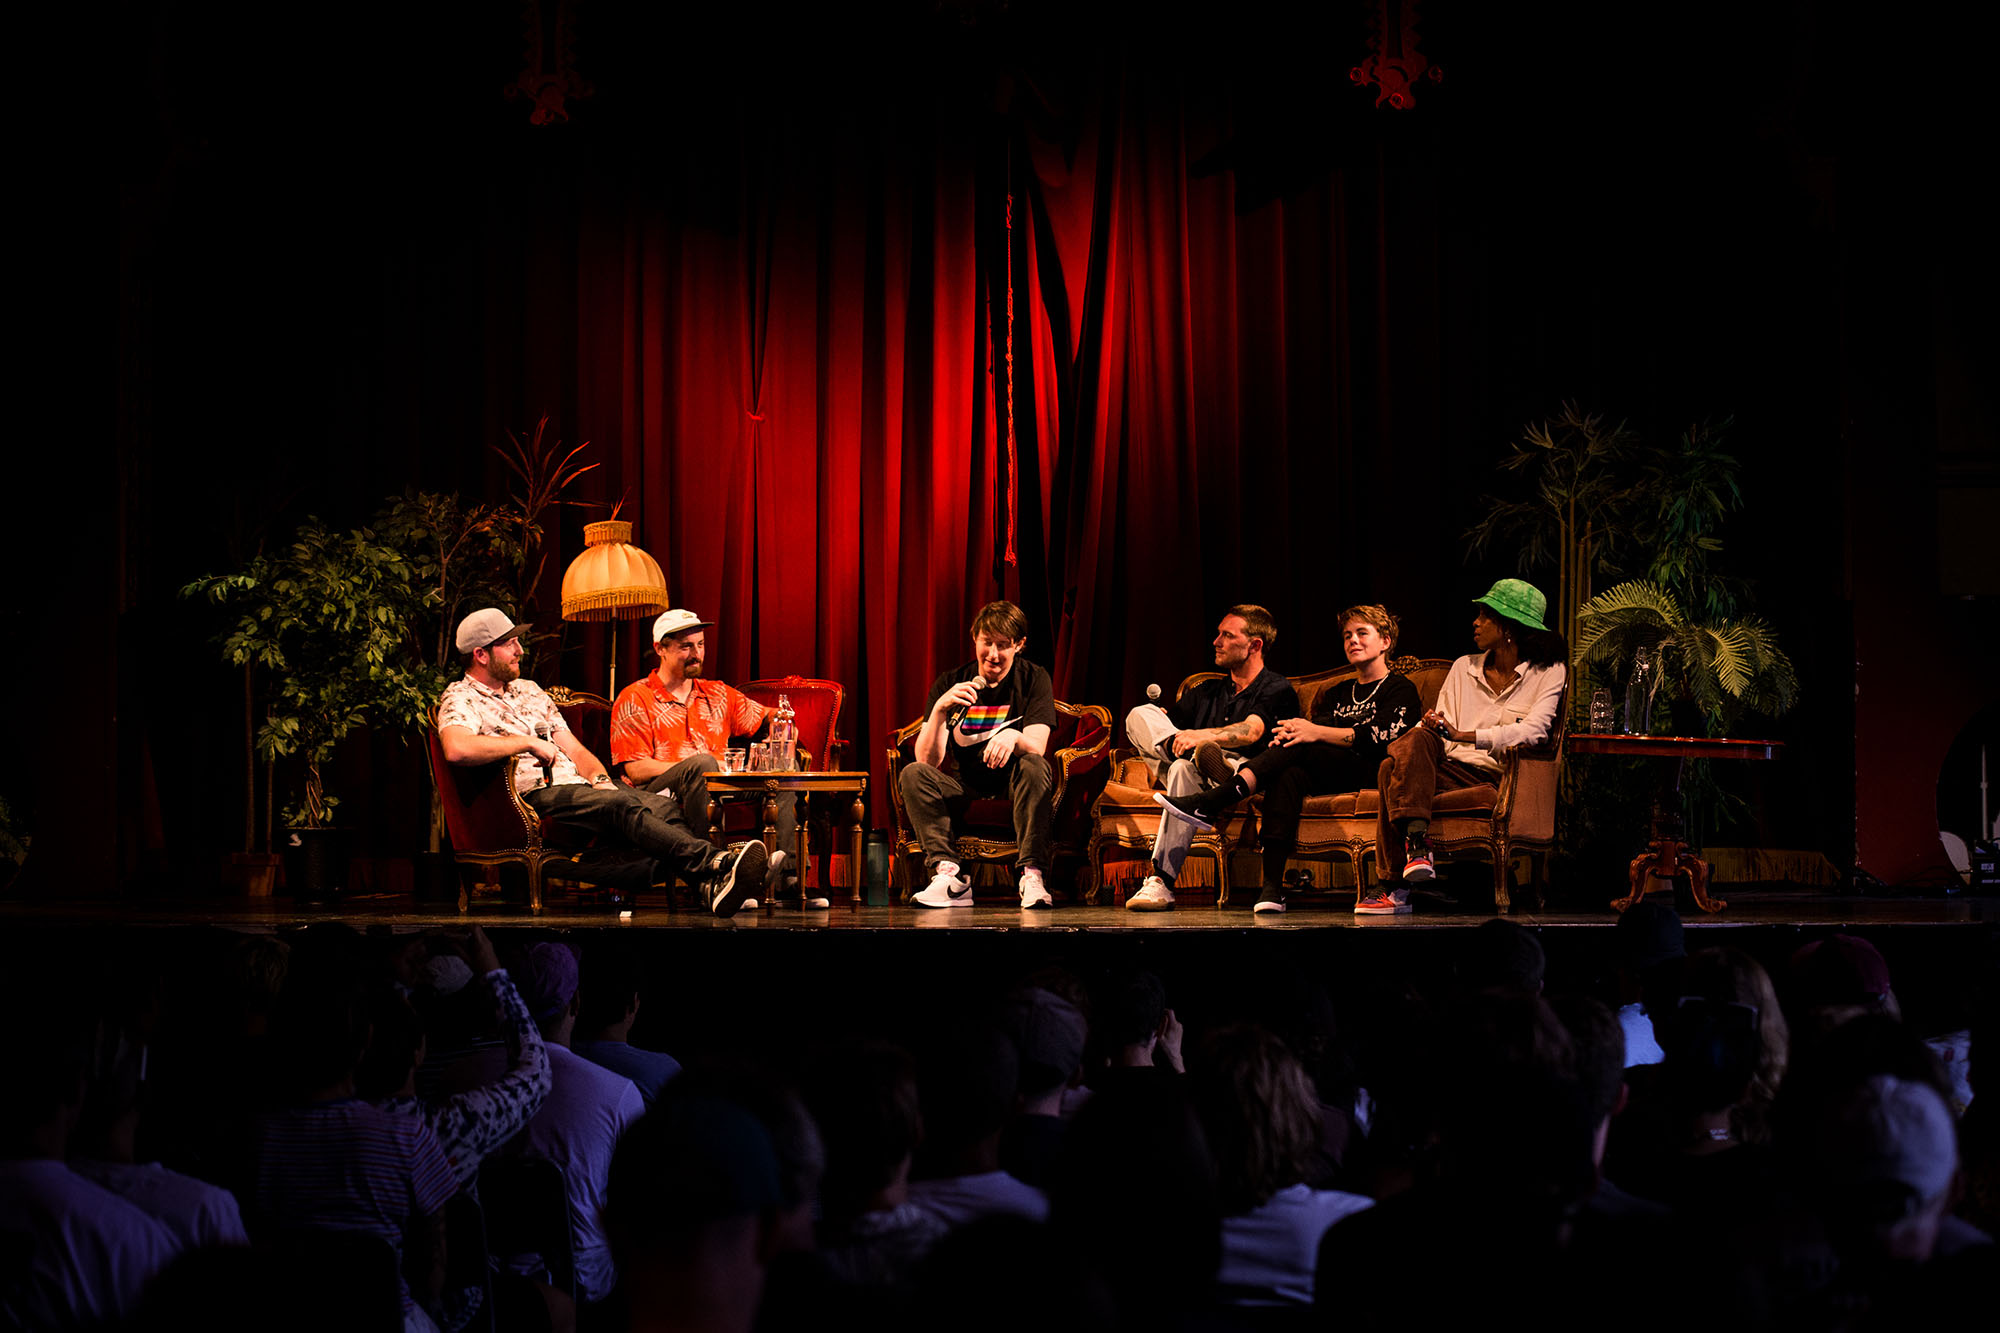 The Prejudice and Allyship Panel. From left to right: Sam McGuire & Tobias Coughlin-Bogue(Skateism), Mark Nickels(film maker), Yann Horowitz(pro skateboarder), Lacey Baker(pro skateboarder), Brea